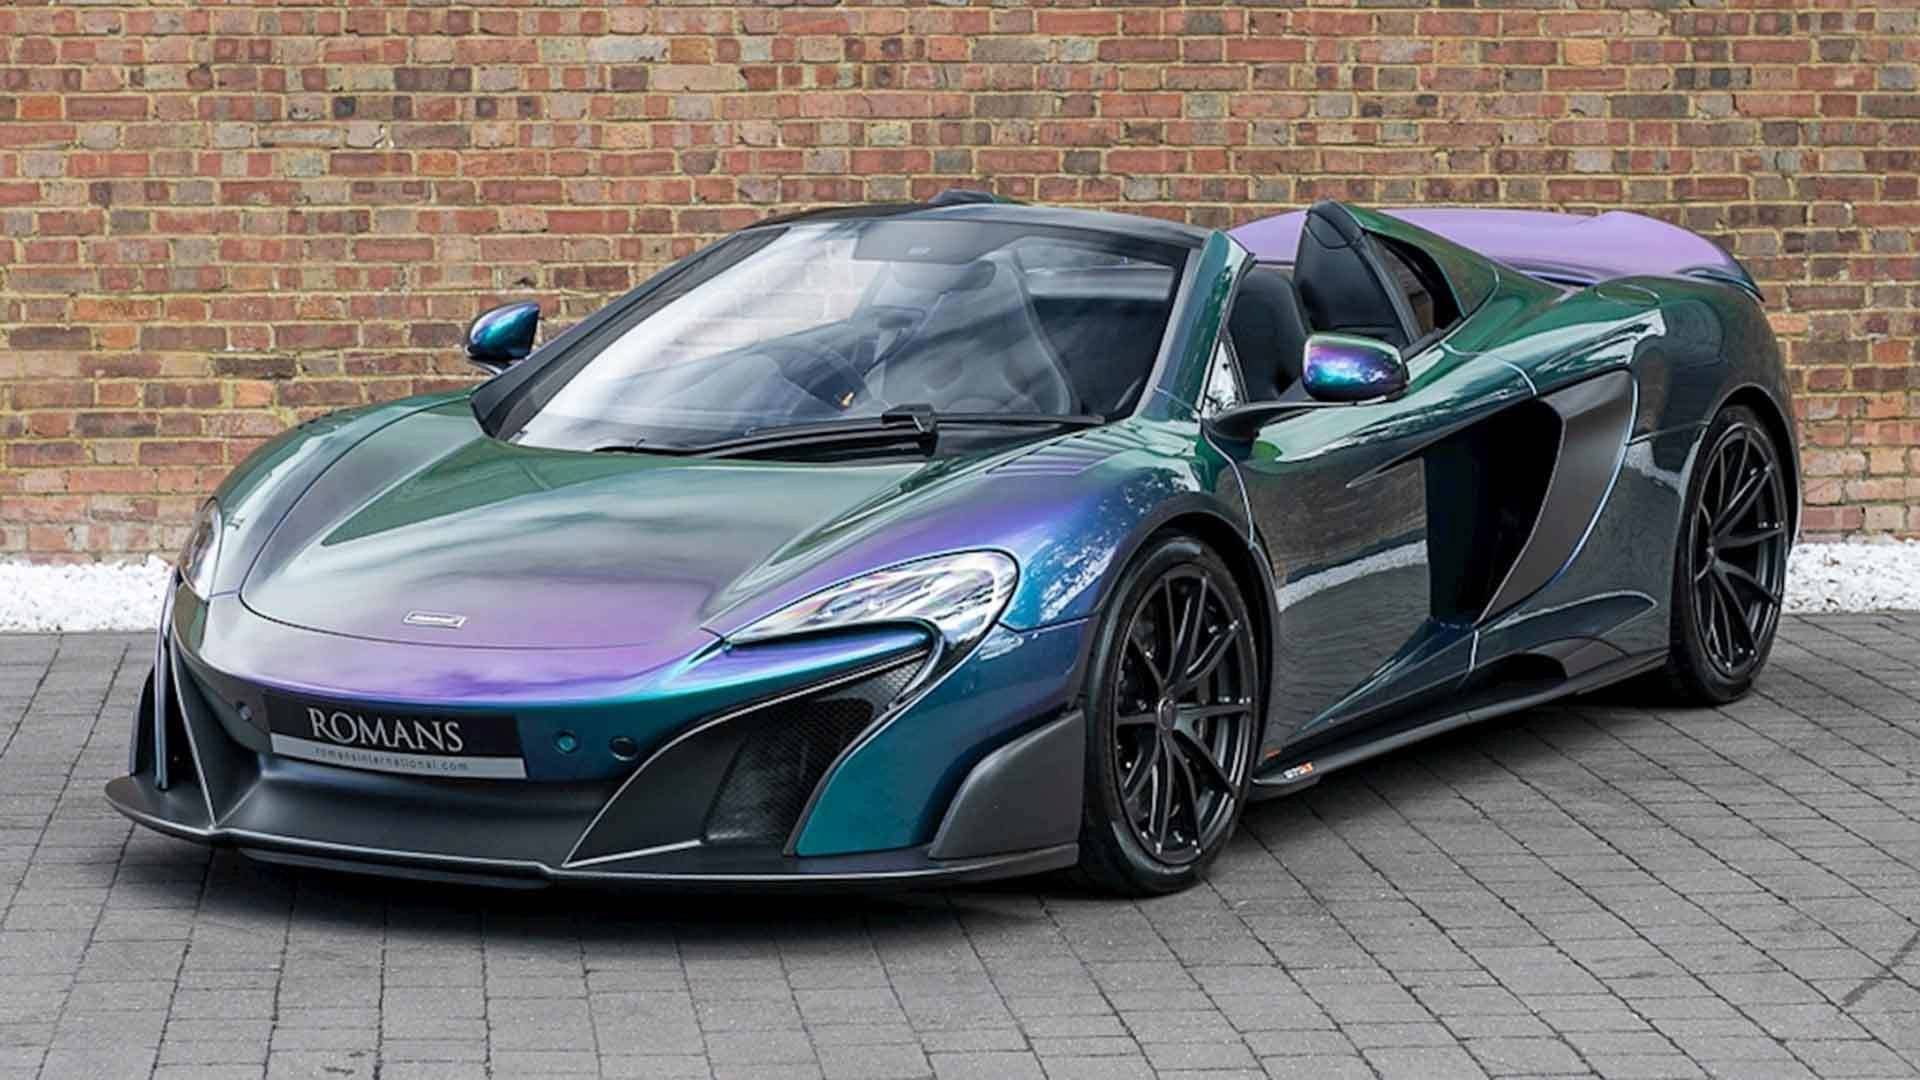 mclaren-675lt-spider-in-chameleon-paint (5)